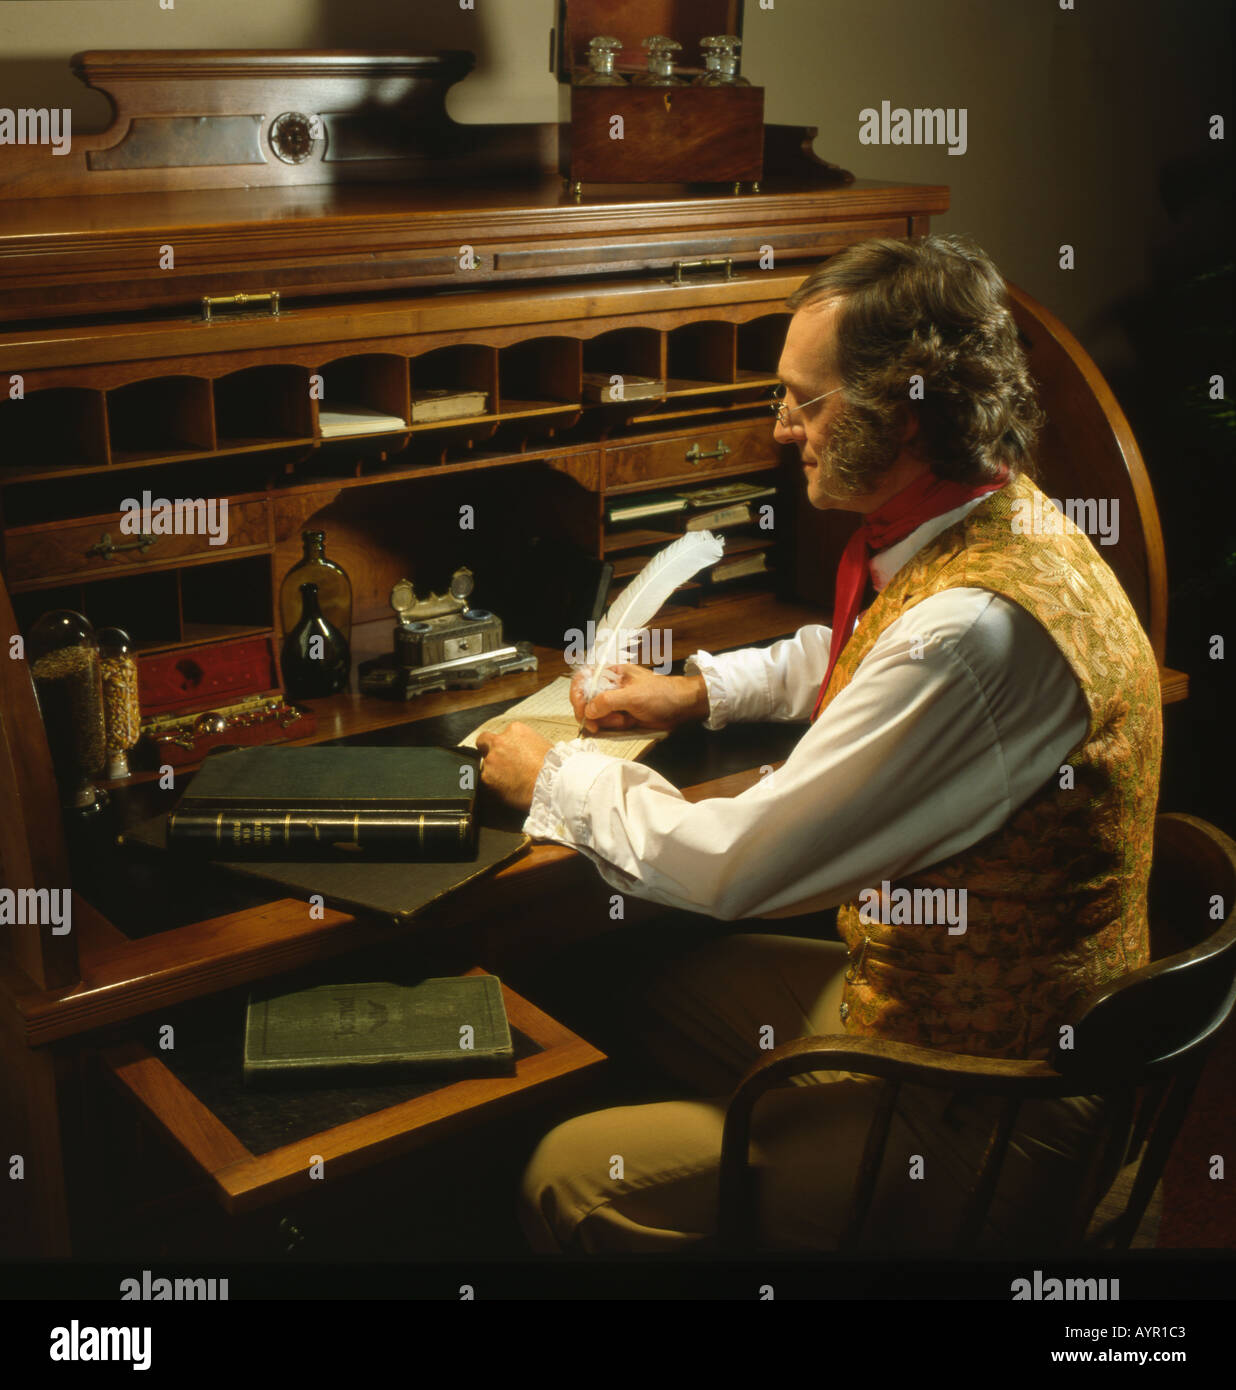 Man In 19th Century Costume Sitting At Roll Top Desk